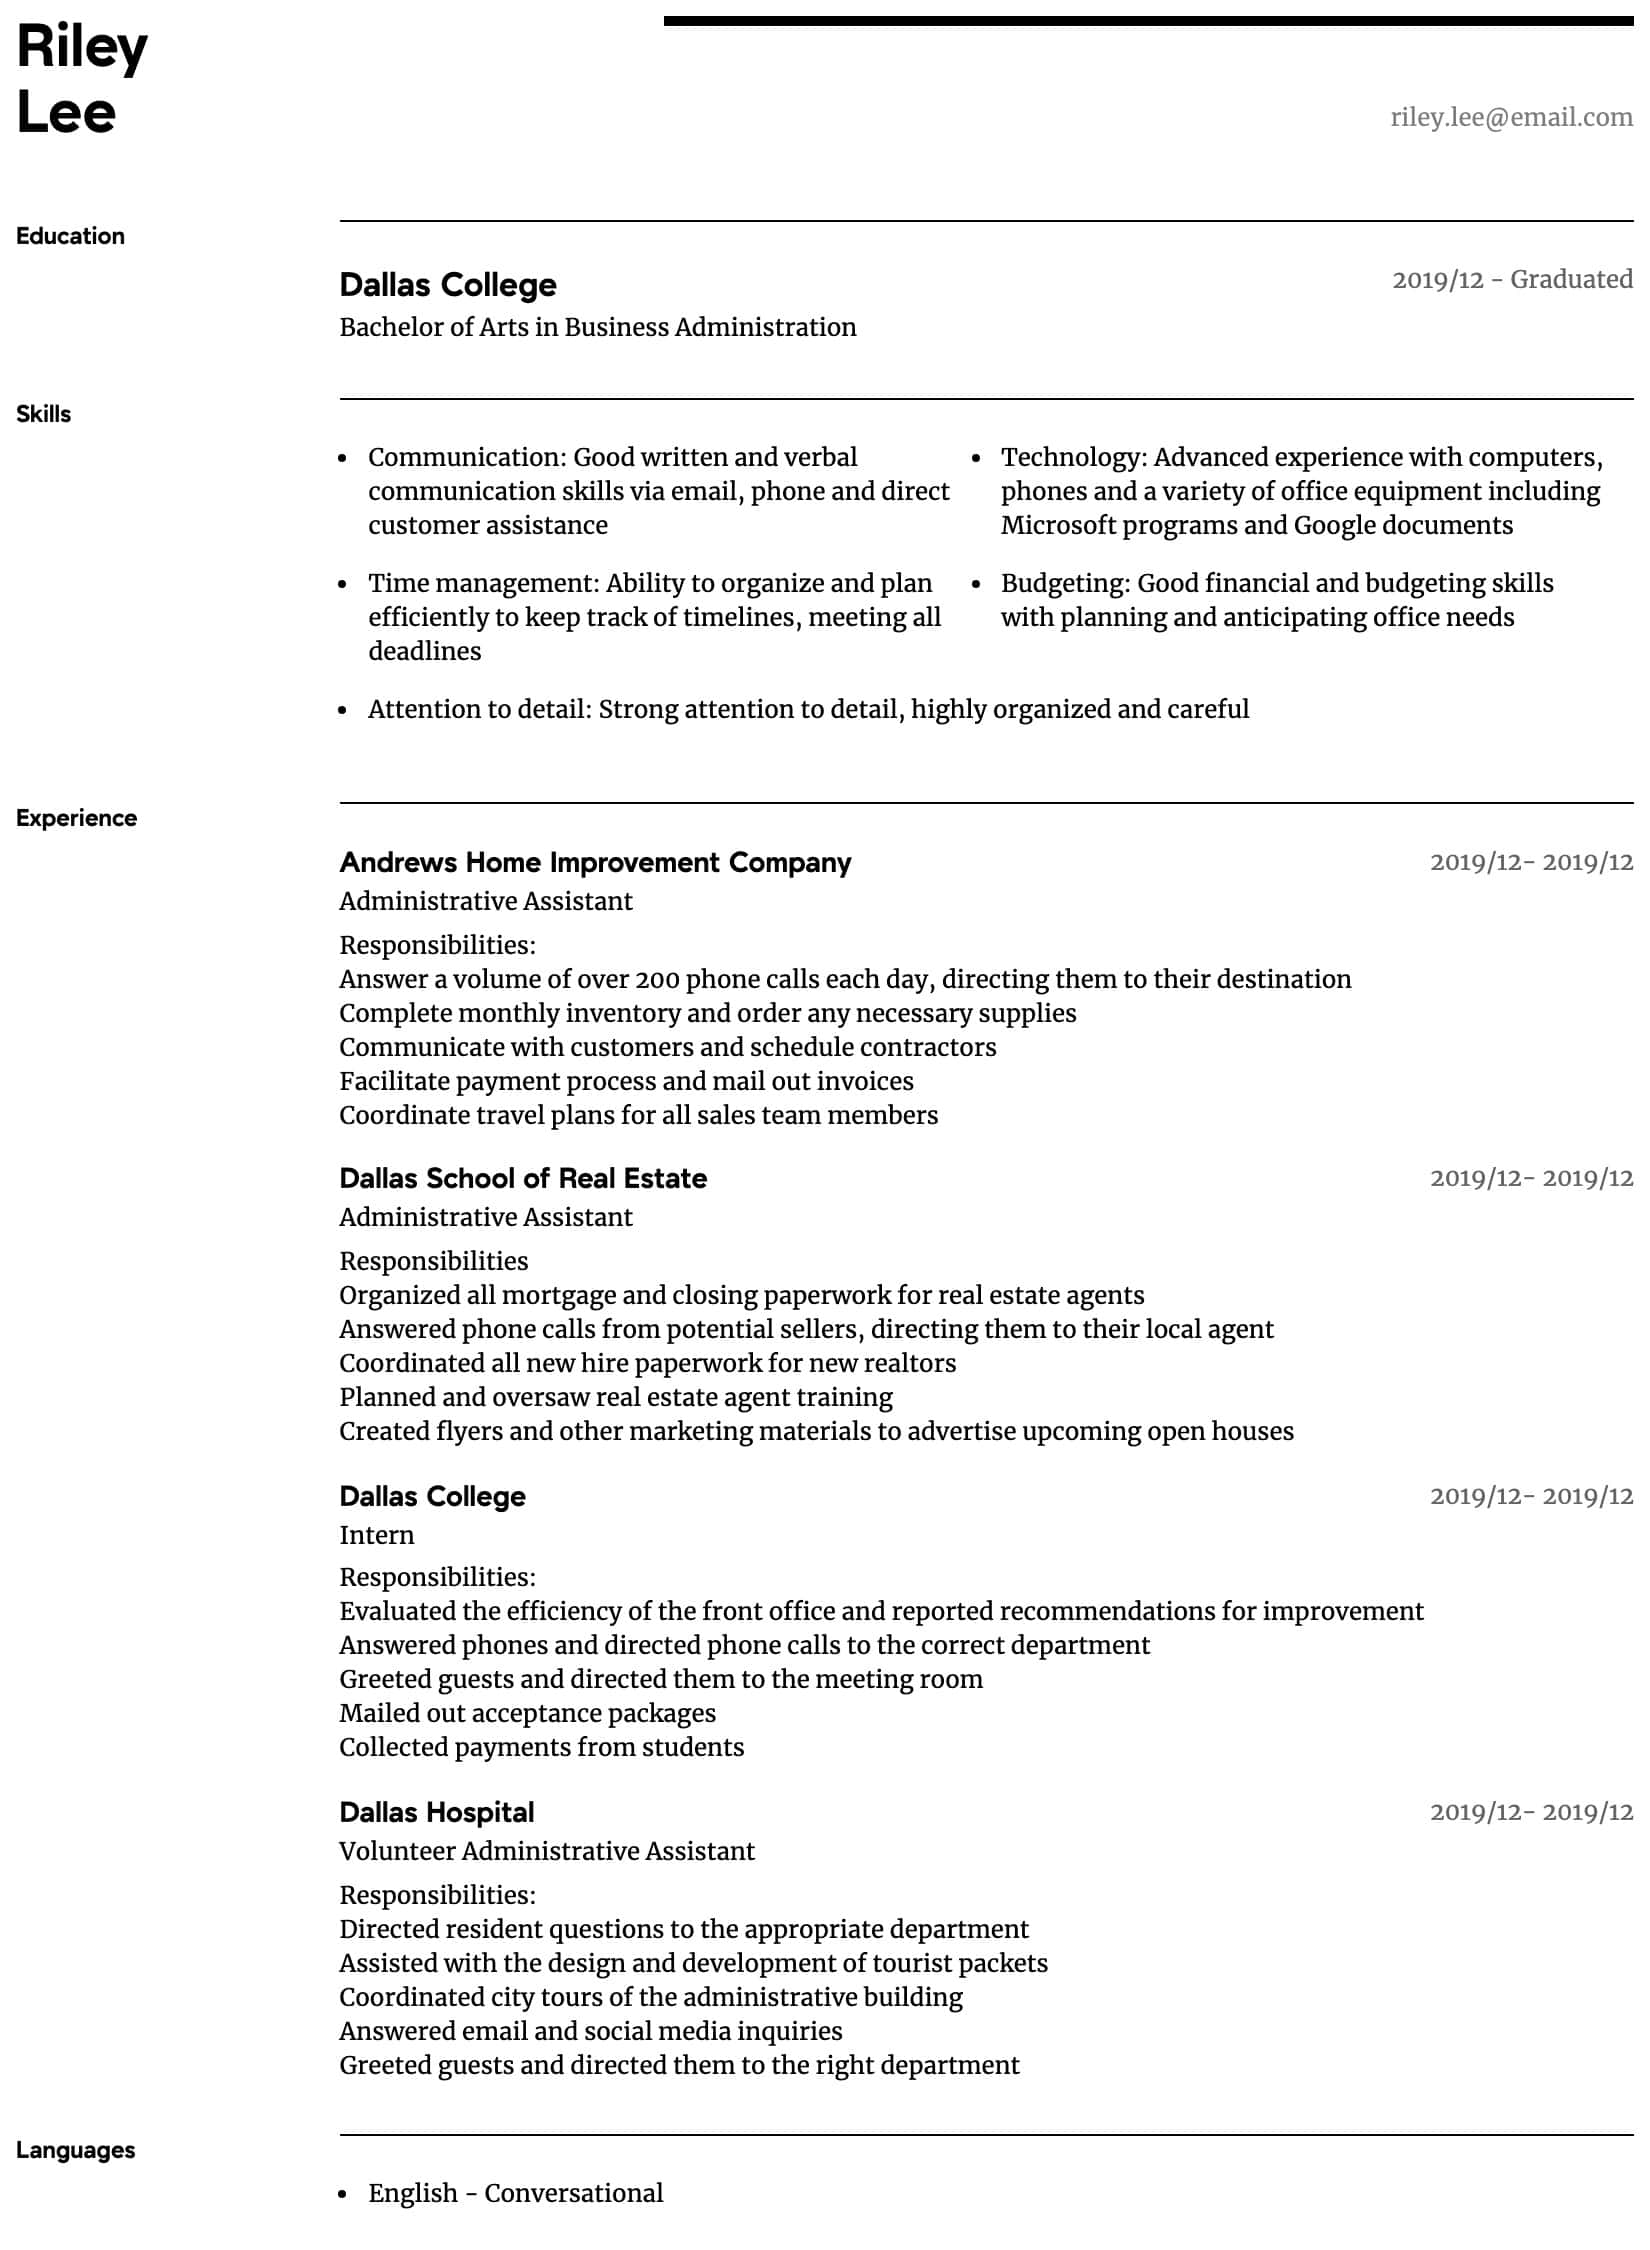 Administrative Assistant Resume Samples All Experience Levels